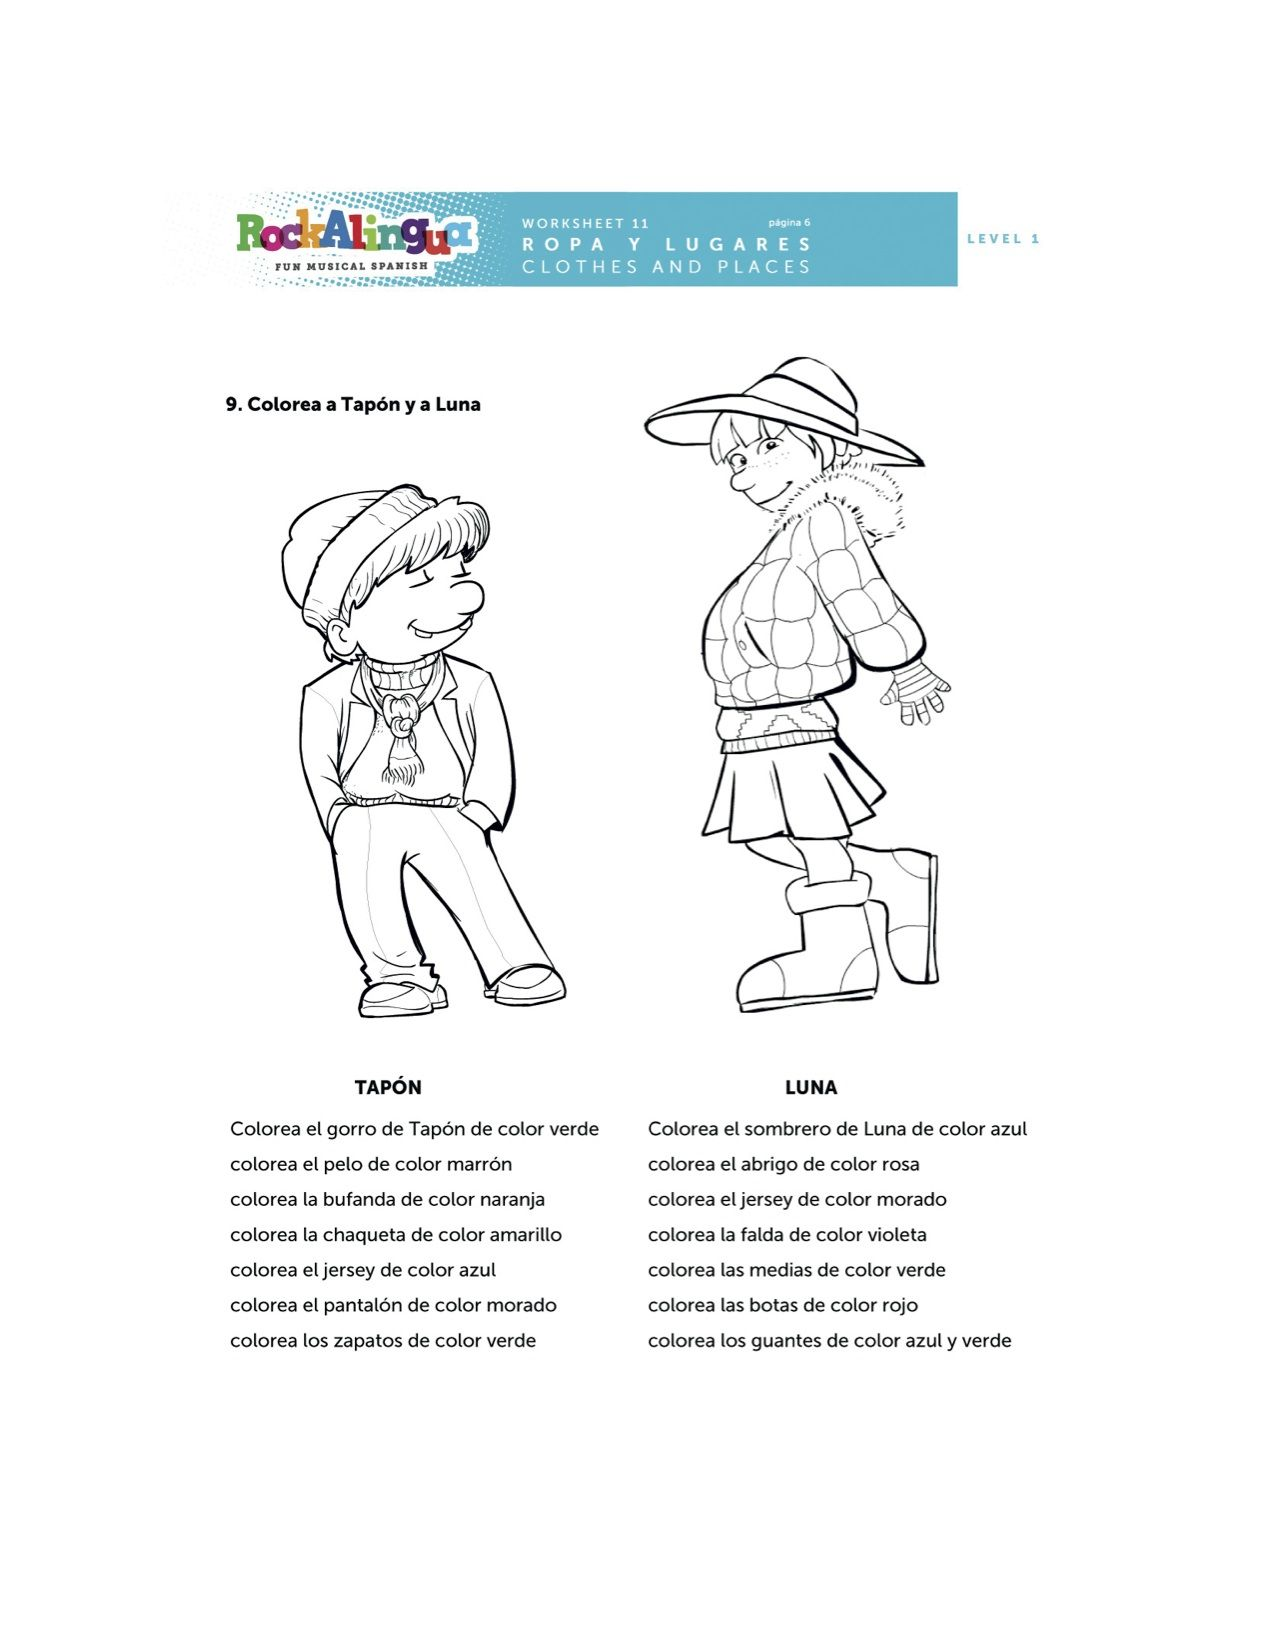 Spanish Worksheet About Clothes Places And Weather More Spanish Teaching Resources At Www Roc Elementary Spanish Spanish Worksheets Spanish Teaching Resources [ 1650 x 1275 Pixel ]